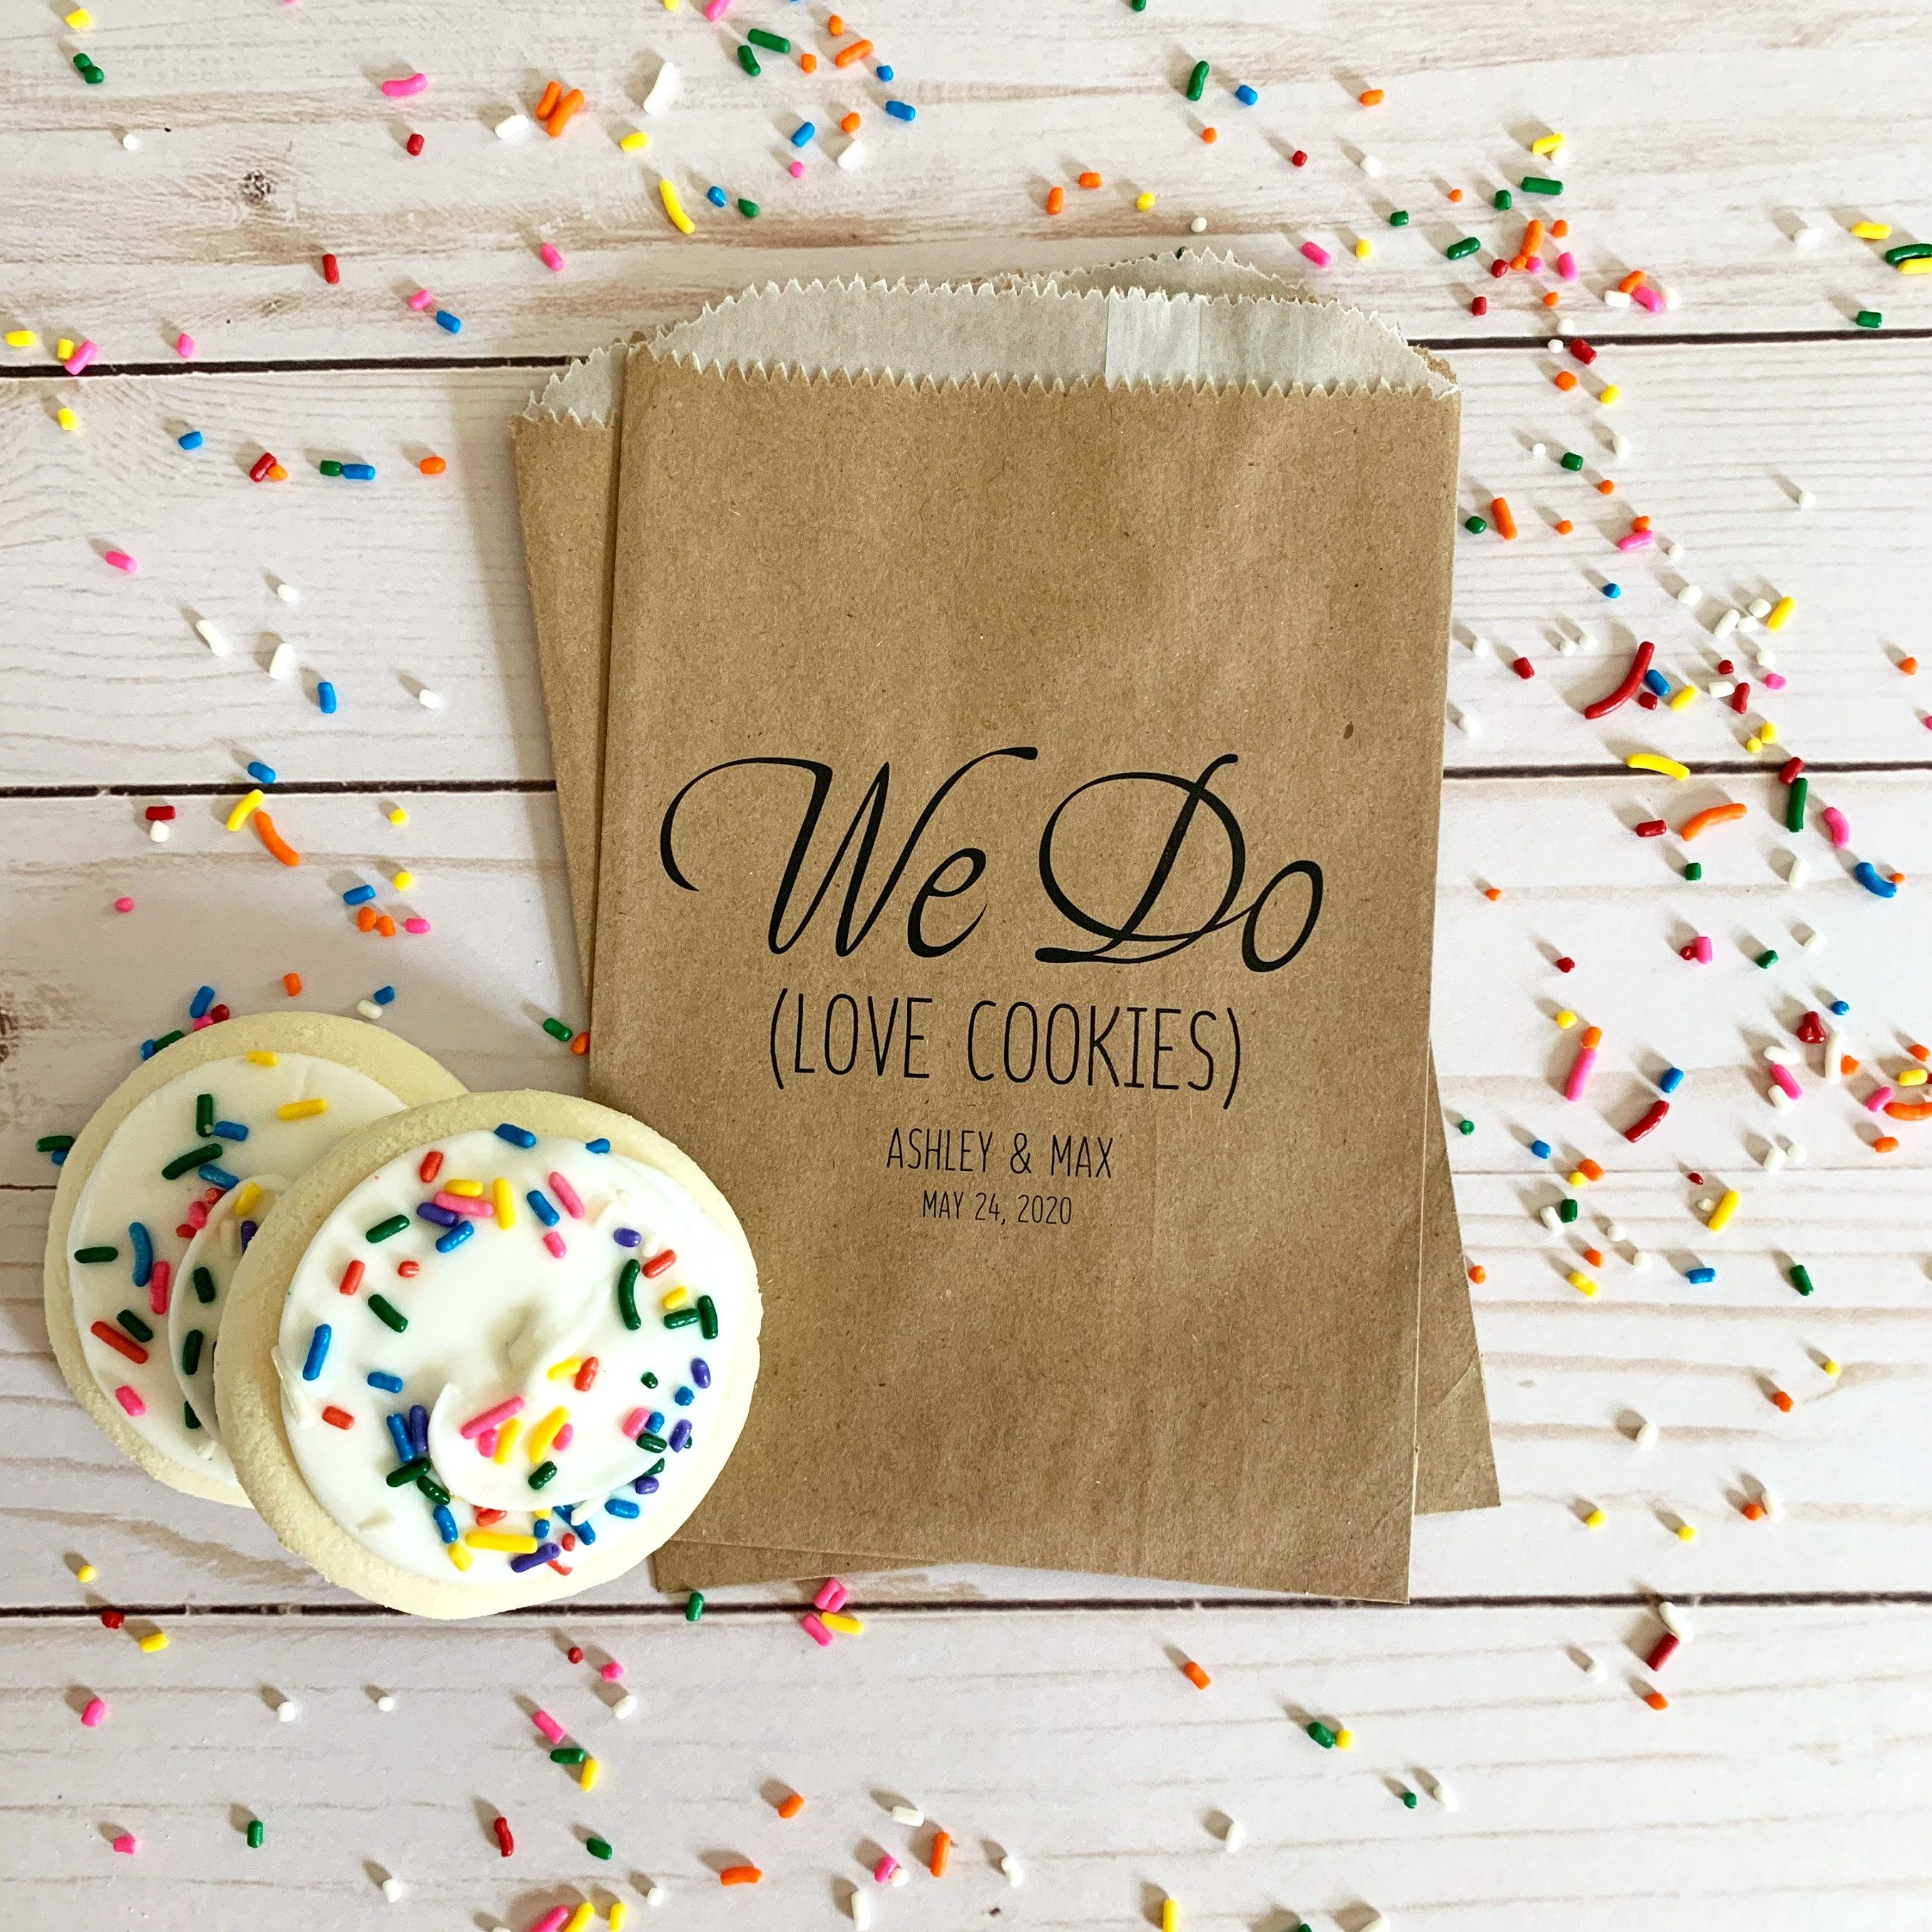 Lined Wedding Cookie Bags Wedding Favor Cookie Bags For Etsy In 2020 Cookie Wedding Favors Wedding Cookies Bags Wedding Cookies